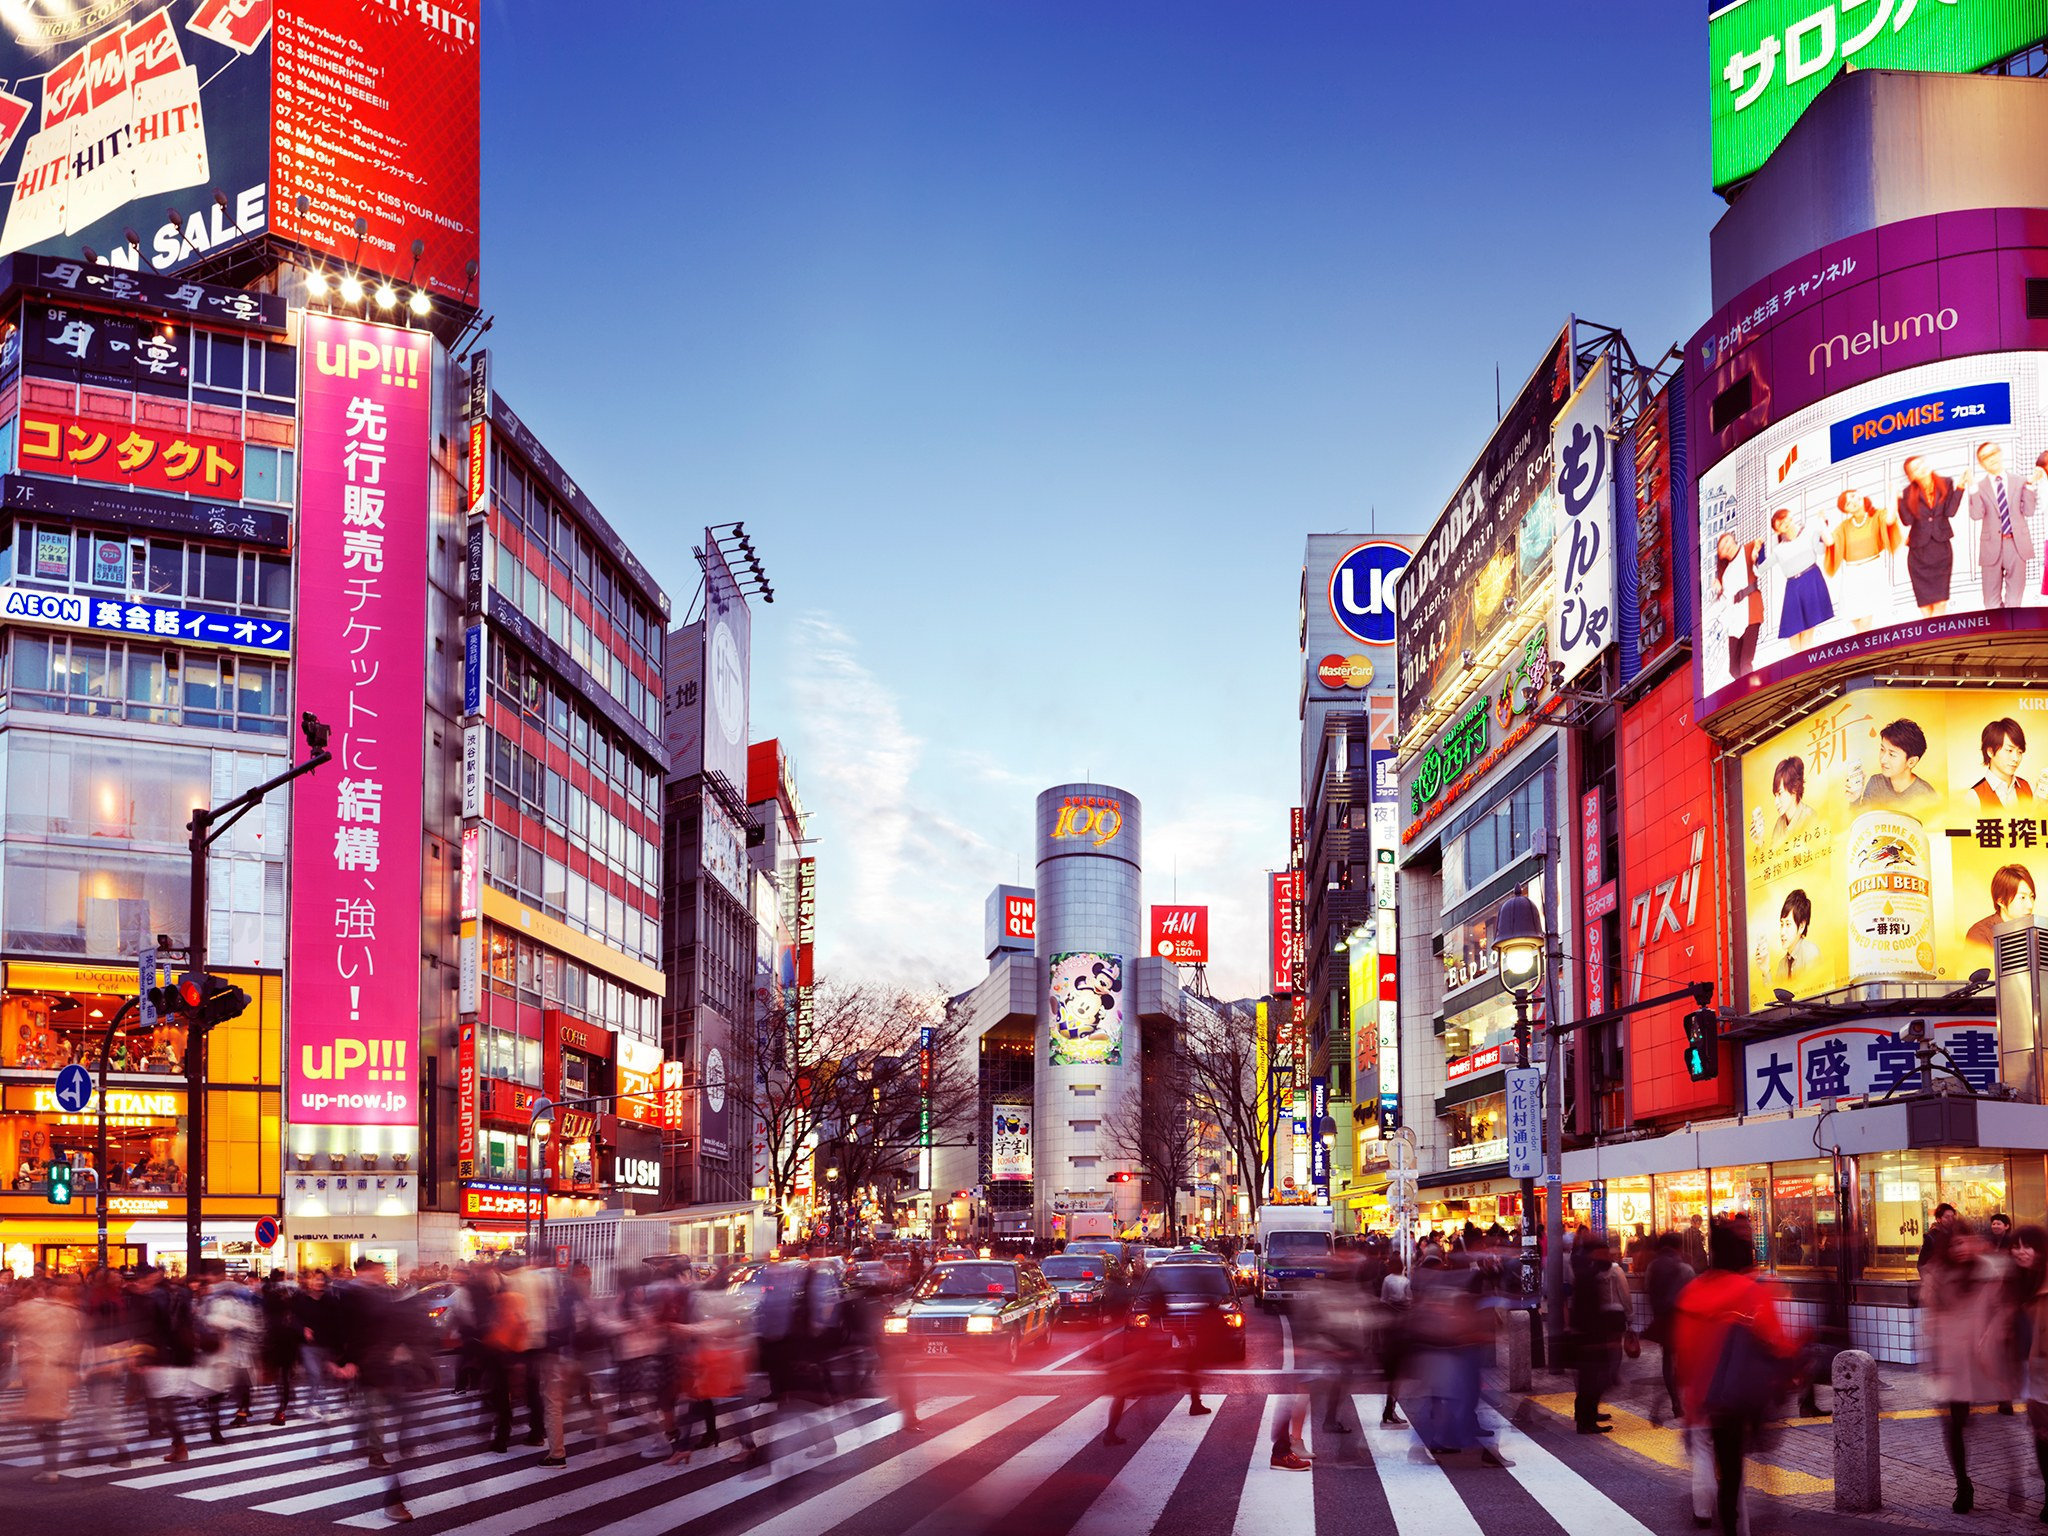 Tokyo nights: Neon lights, manicured ski resorts and hot springs